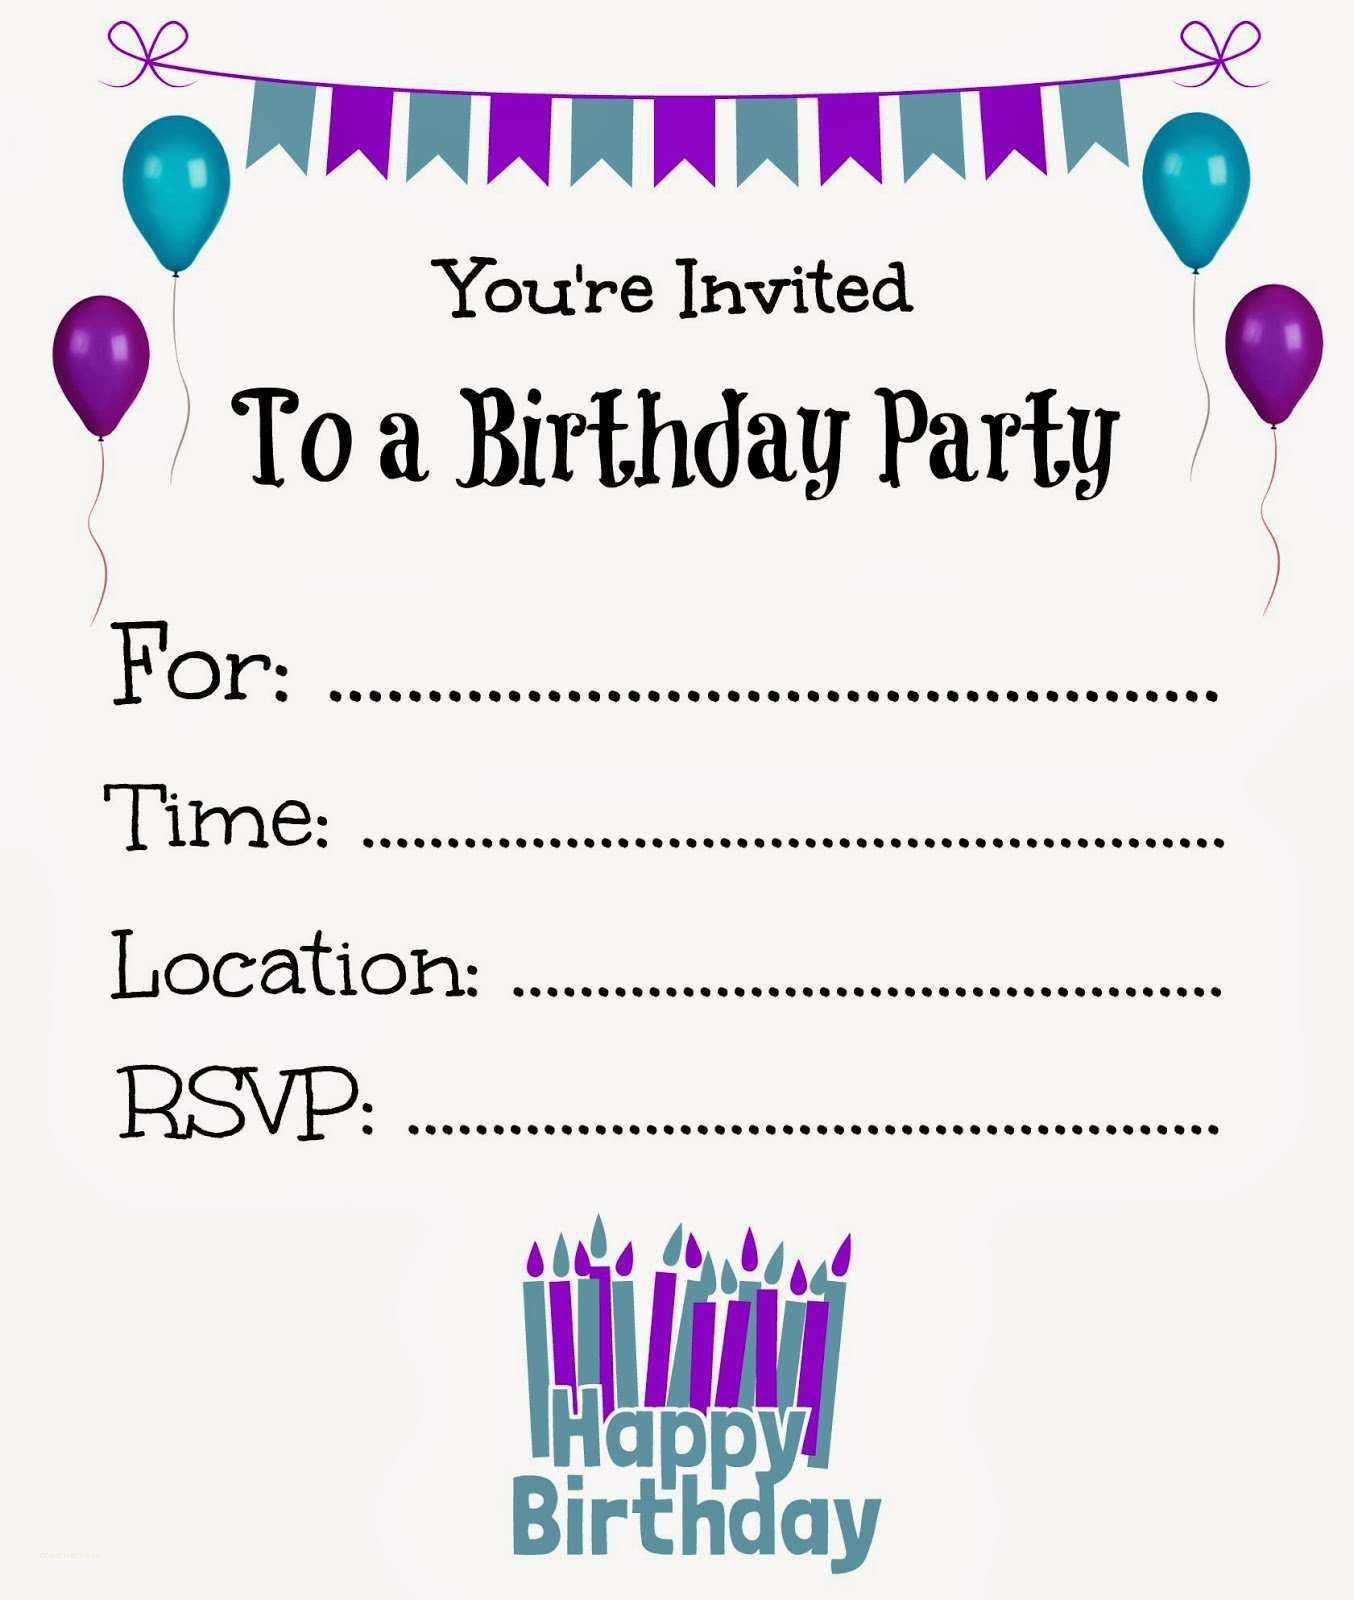 New Free Online Printable Birthday Party Invitations | Holiday - 13Th Birthday Party Invitations Printable Free